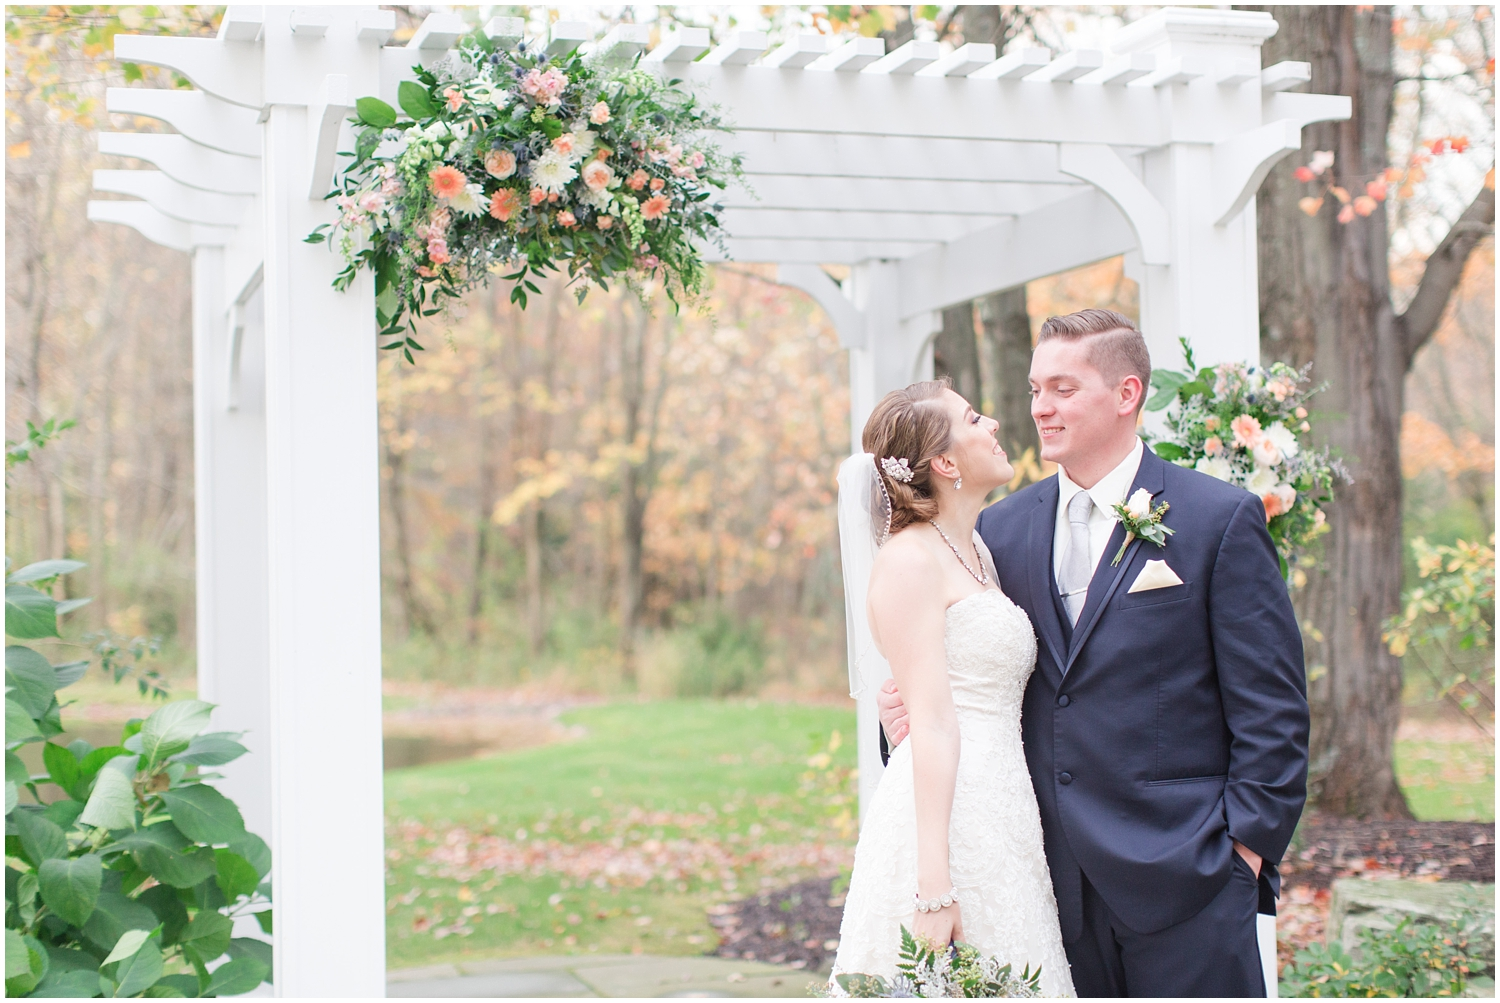 The Lodge at Mountain Springs Lake Resort ceremony